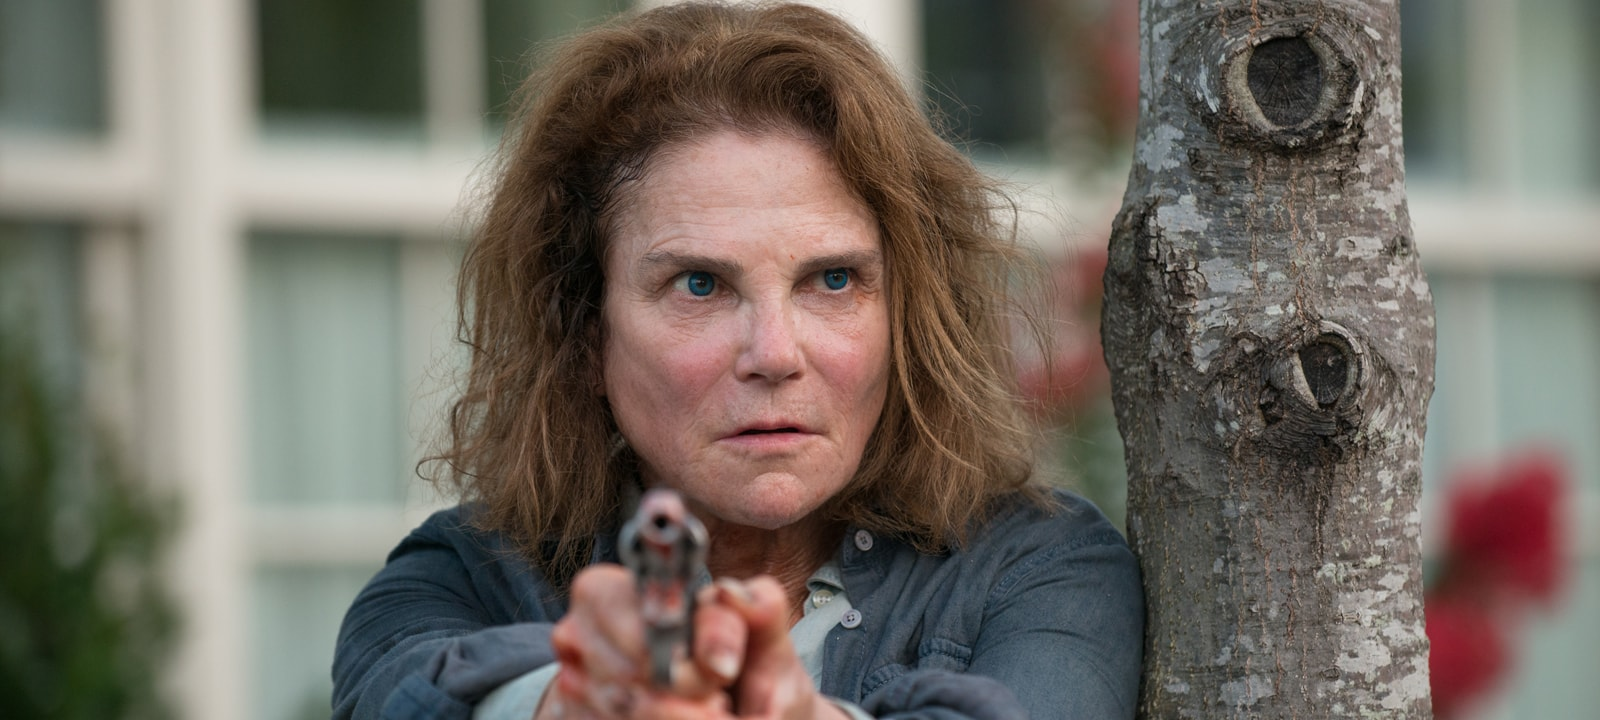 the-walking-dead-episode-608-deanna-feldshuh-interview-800×600